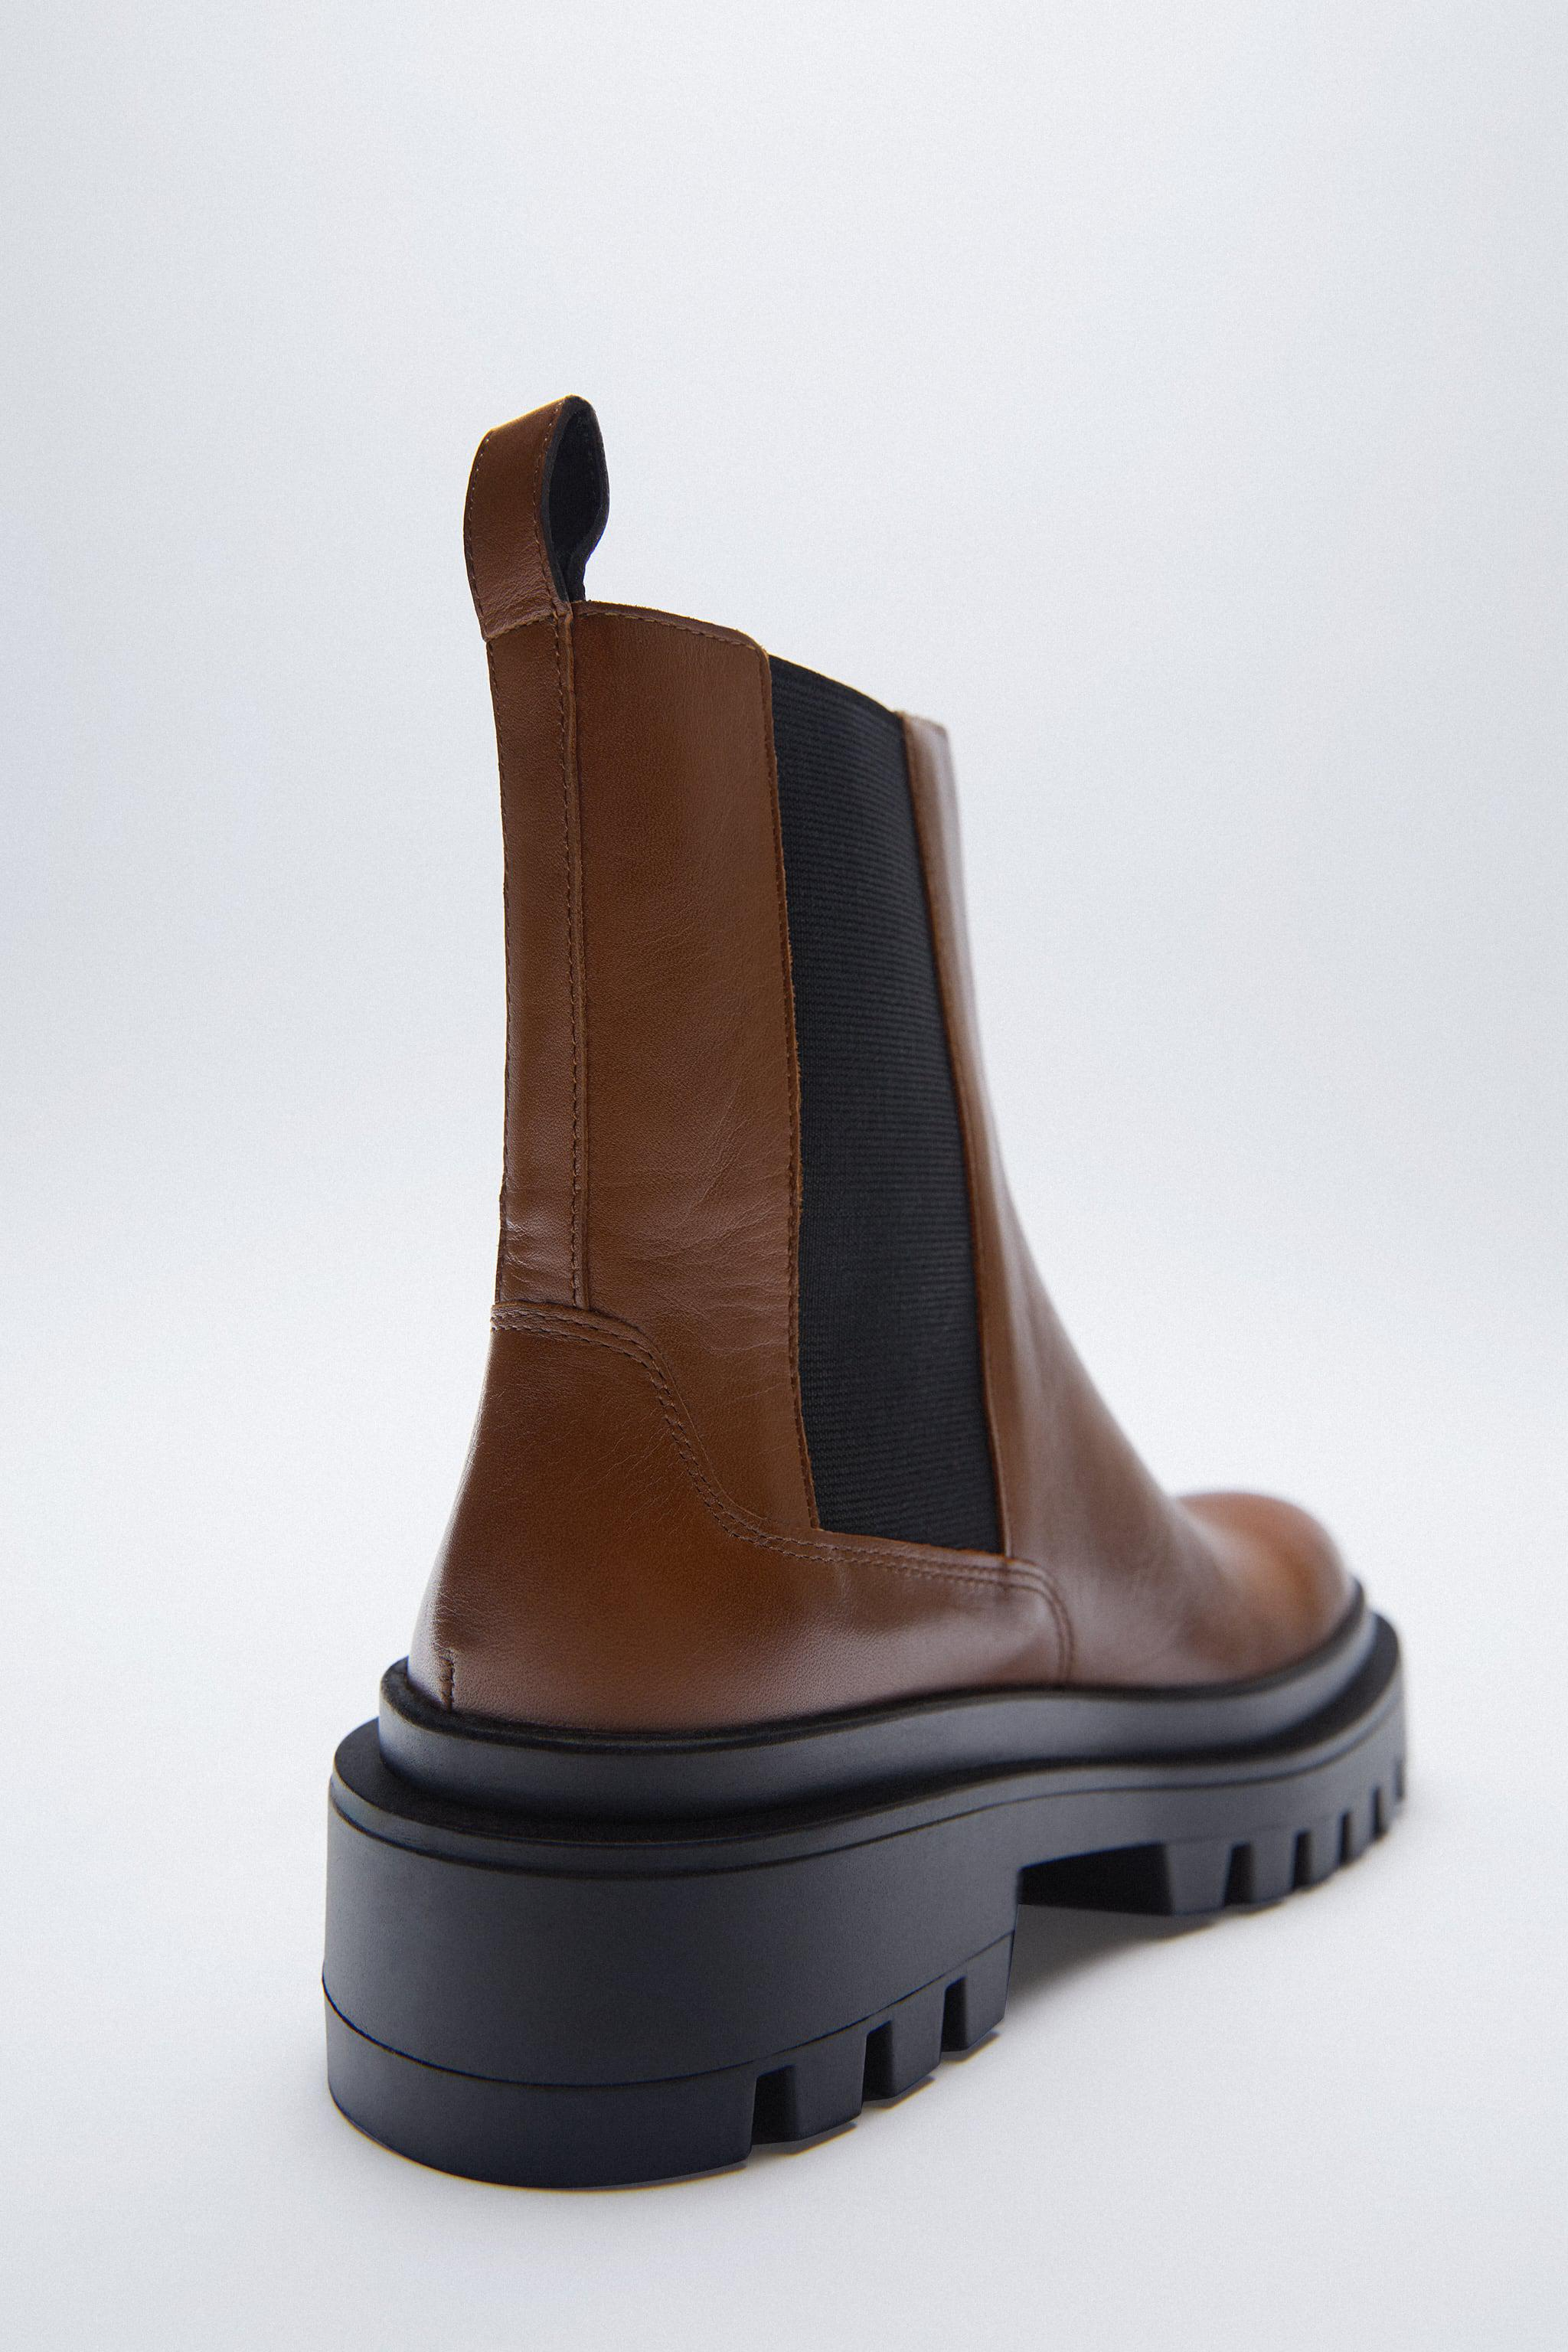 LOW HEELED LUG SOLE LEATHER ANKLE BOOTS 4